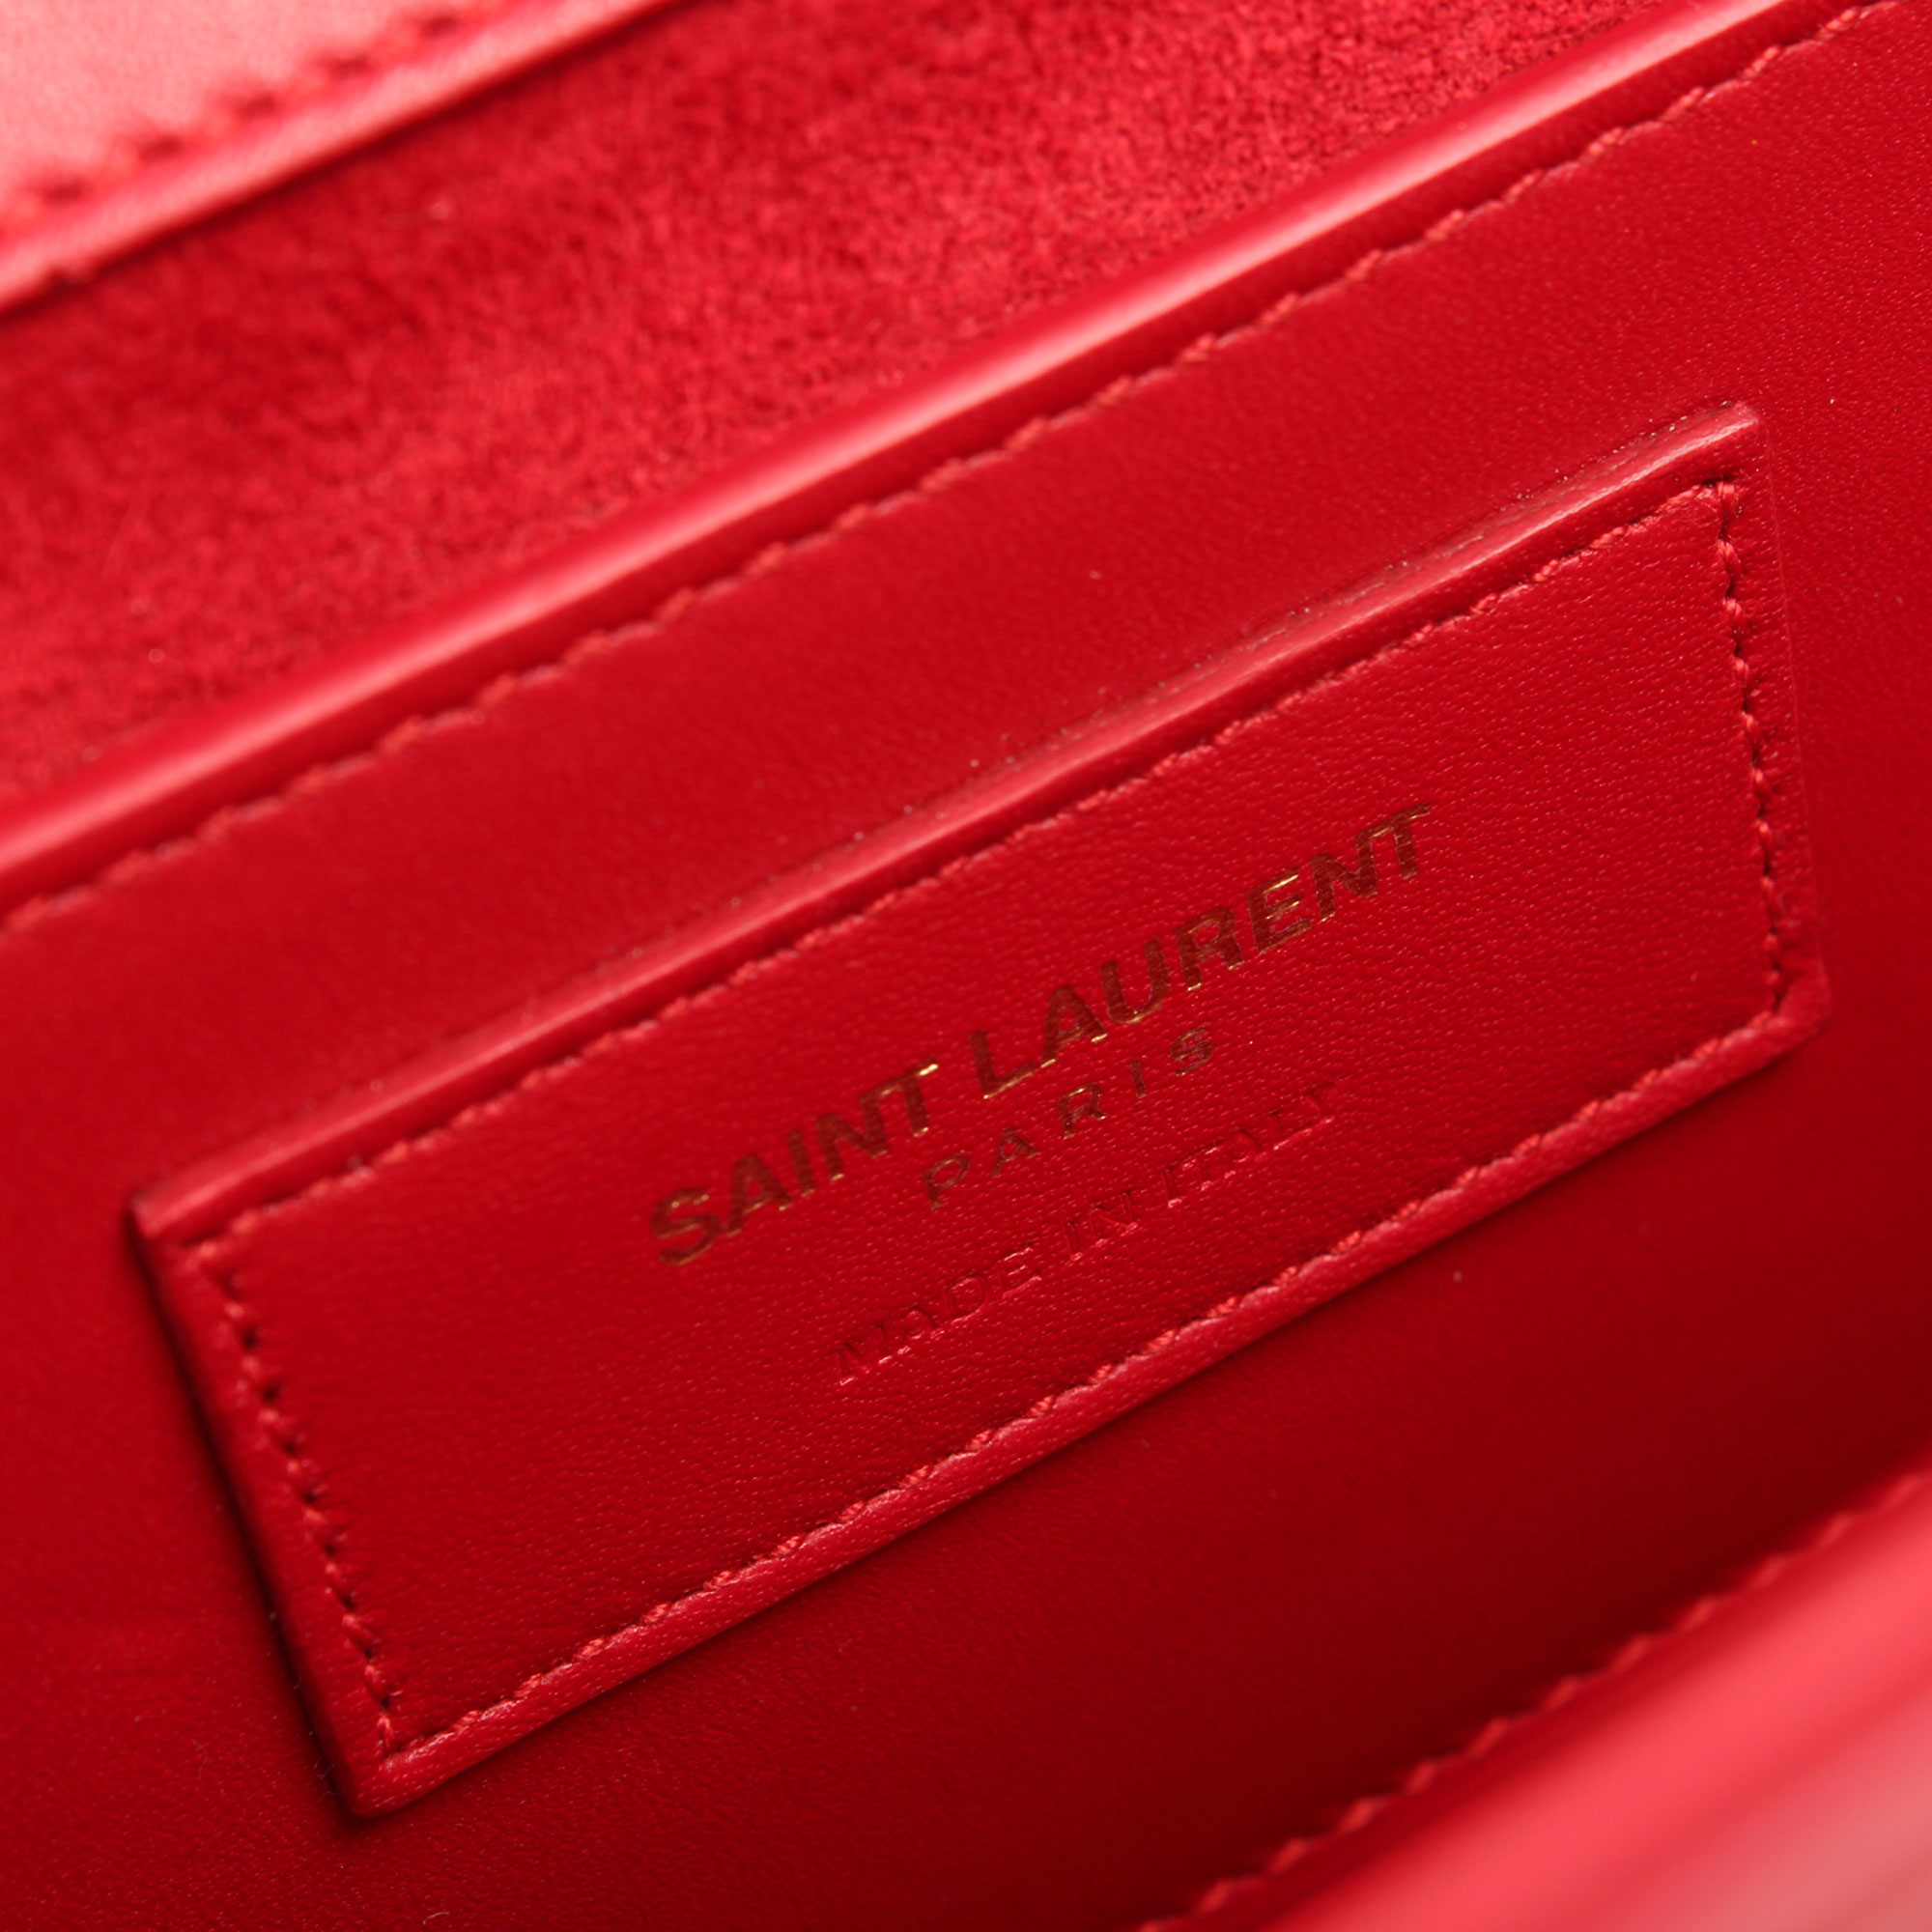 Interior tag image of ysl kate medium bag red calfskin leather